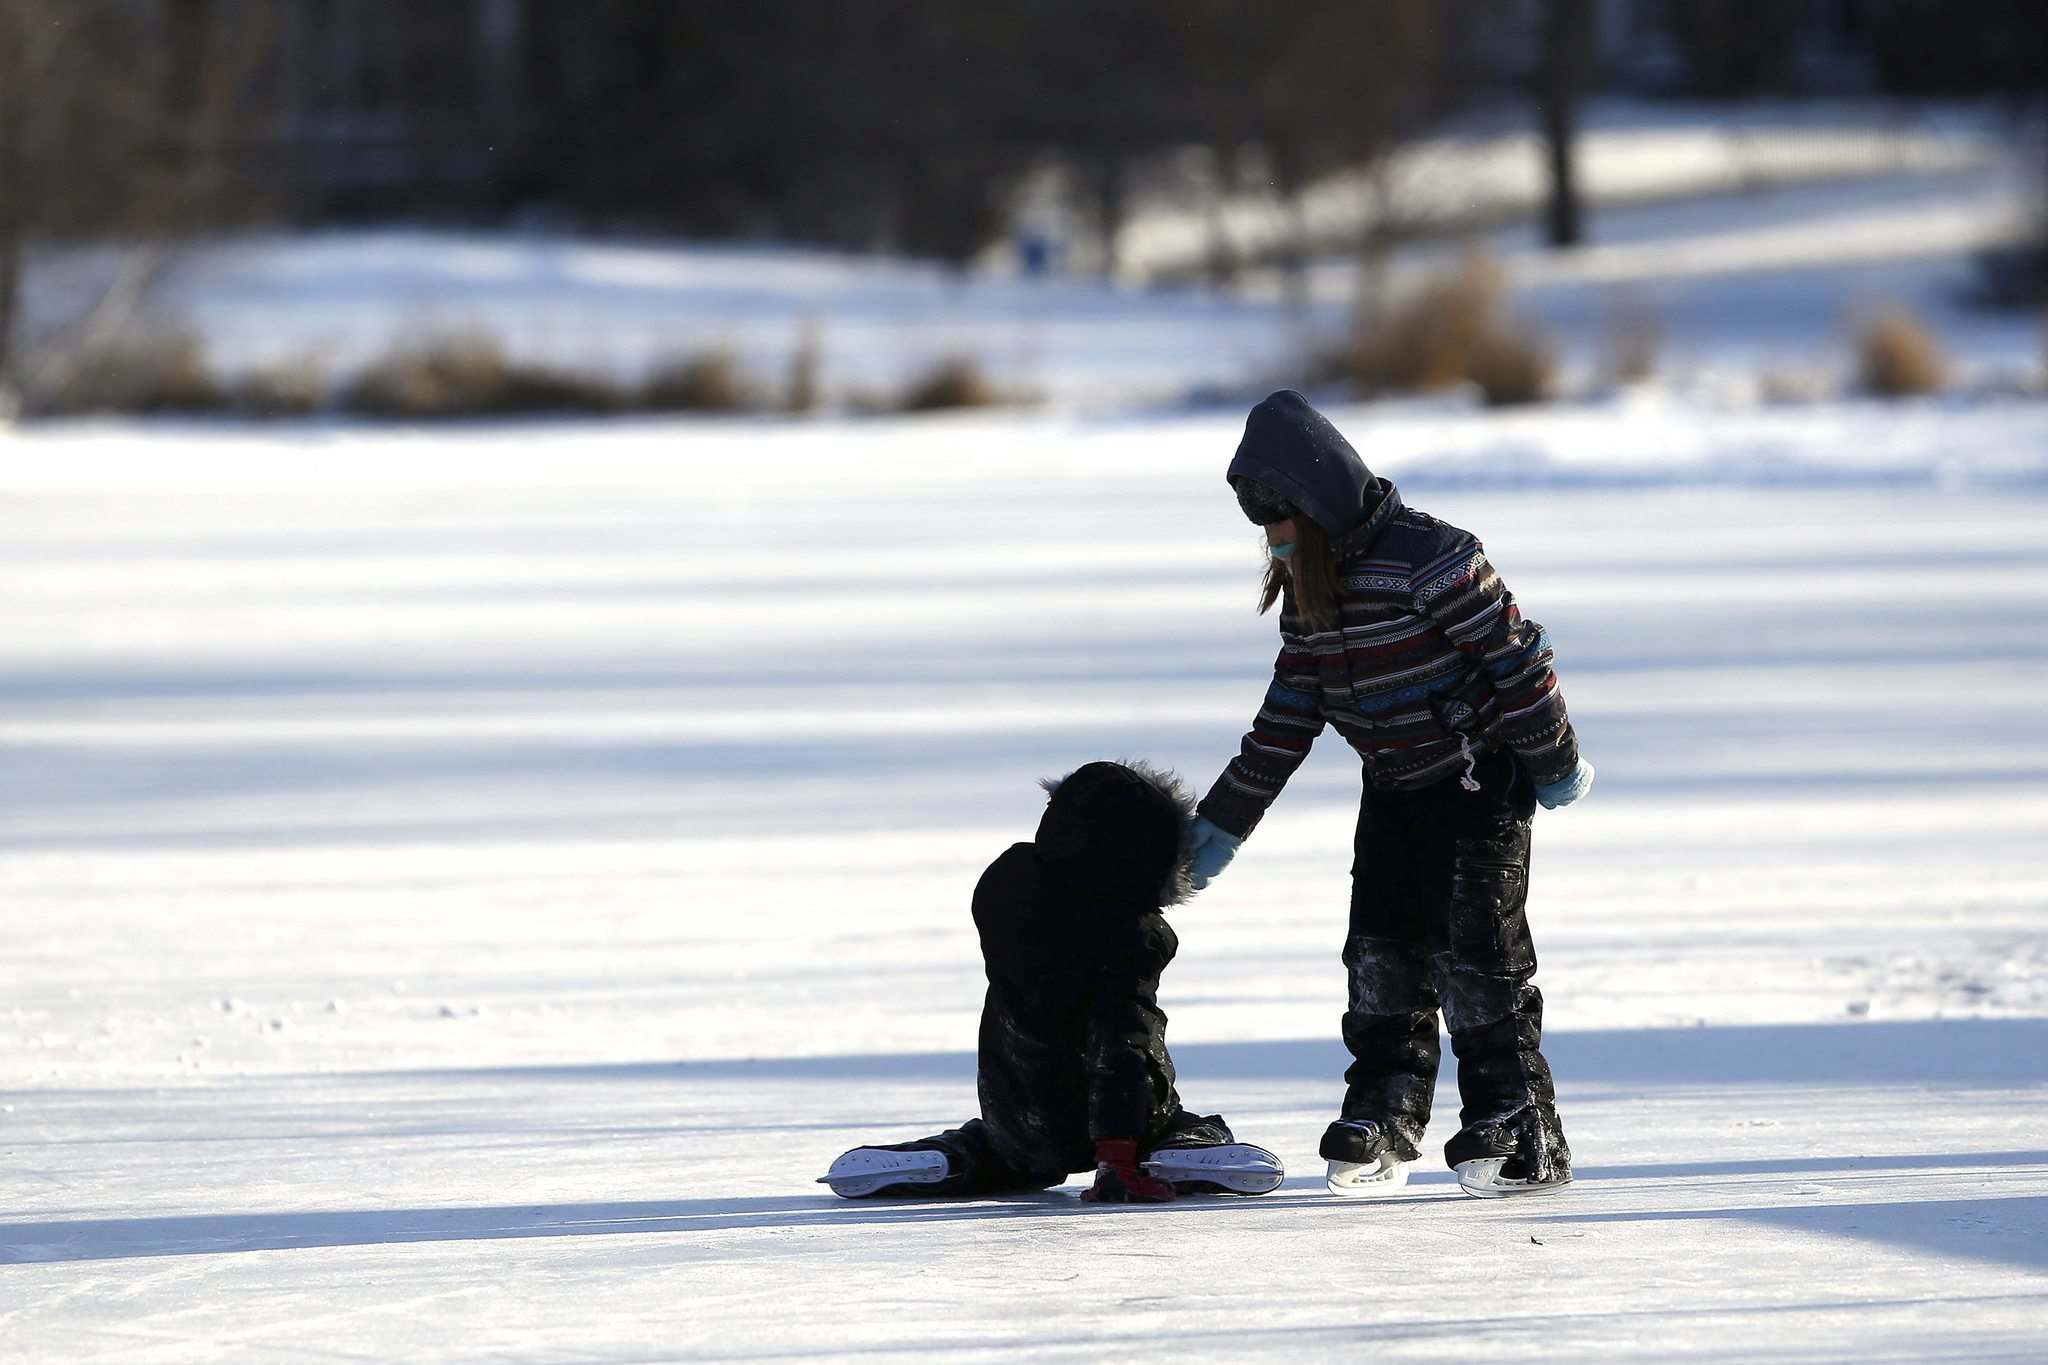 Manitoba's winters are almost two weeks shorter than 100 years ago, according to the results of a three-year analysis of winter temperature. (John Woods / Winnipeg Free Press)